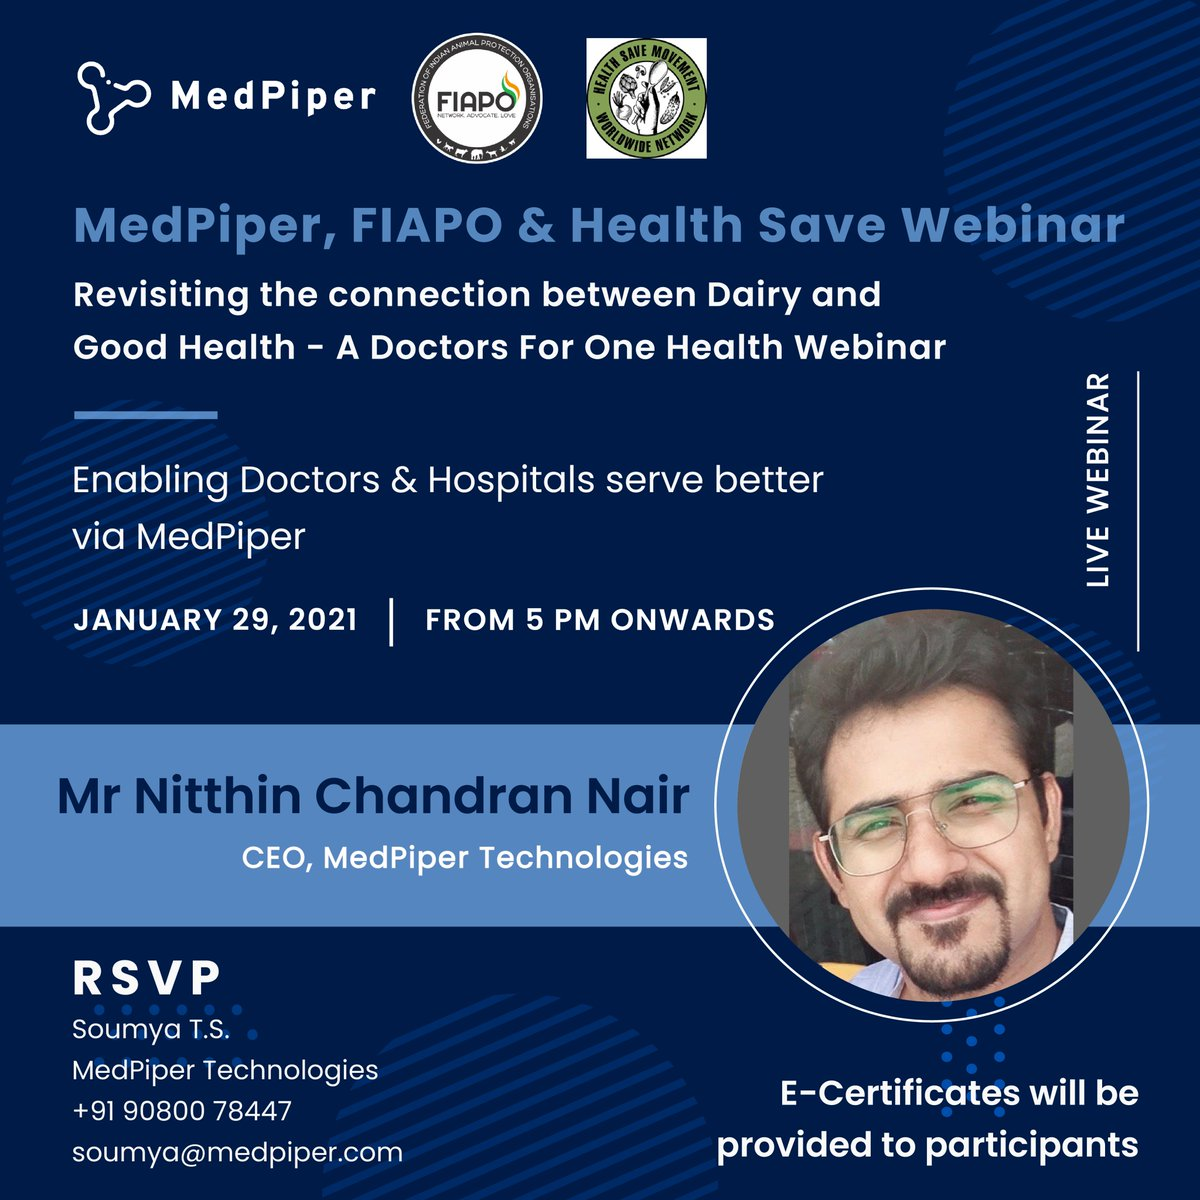 """Webinar on """"Revisiting the connection between Dairy and Good Health"""" ; Date 29 January , Friday , 5 Pm soumya@medpiper.com / 90800 78447  Register link for the webinar:   #Medpiper #fiapo #healthcare #doctorsmeet #diaryindustry #animalcare #repost"""